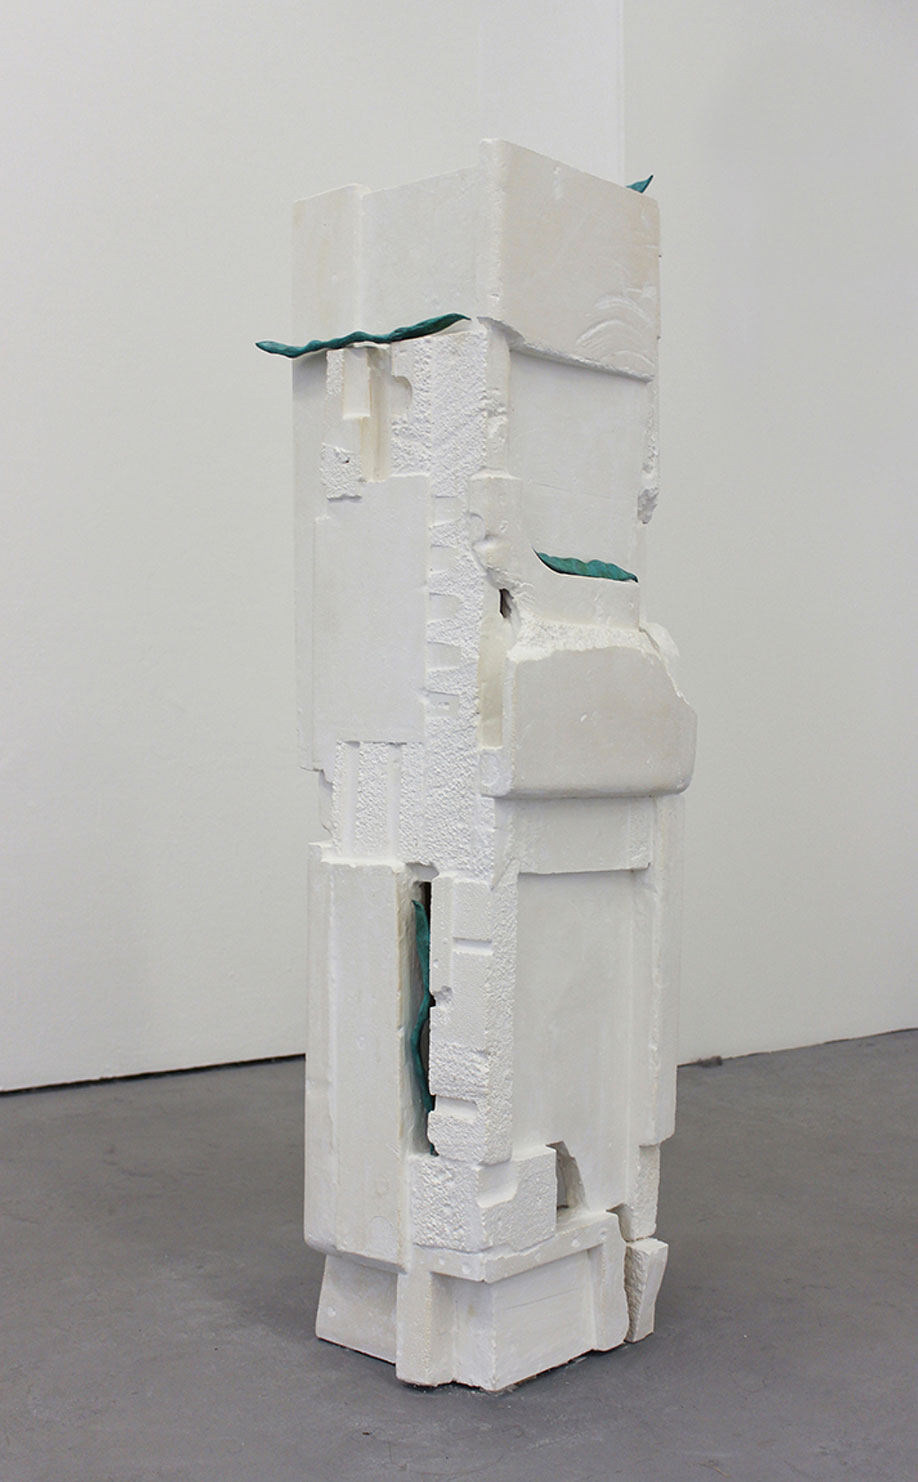 <b>Title:&nbsp;</b>Totem<br /><b>Year:&nbsp;</b>2013<br /><b>Medium:&nbsp;</b>Plaster, wood, and patinated bronze<br /><b>Size:&nbsp;</b>35 x 120 x 35 cm